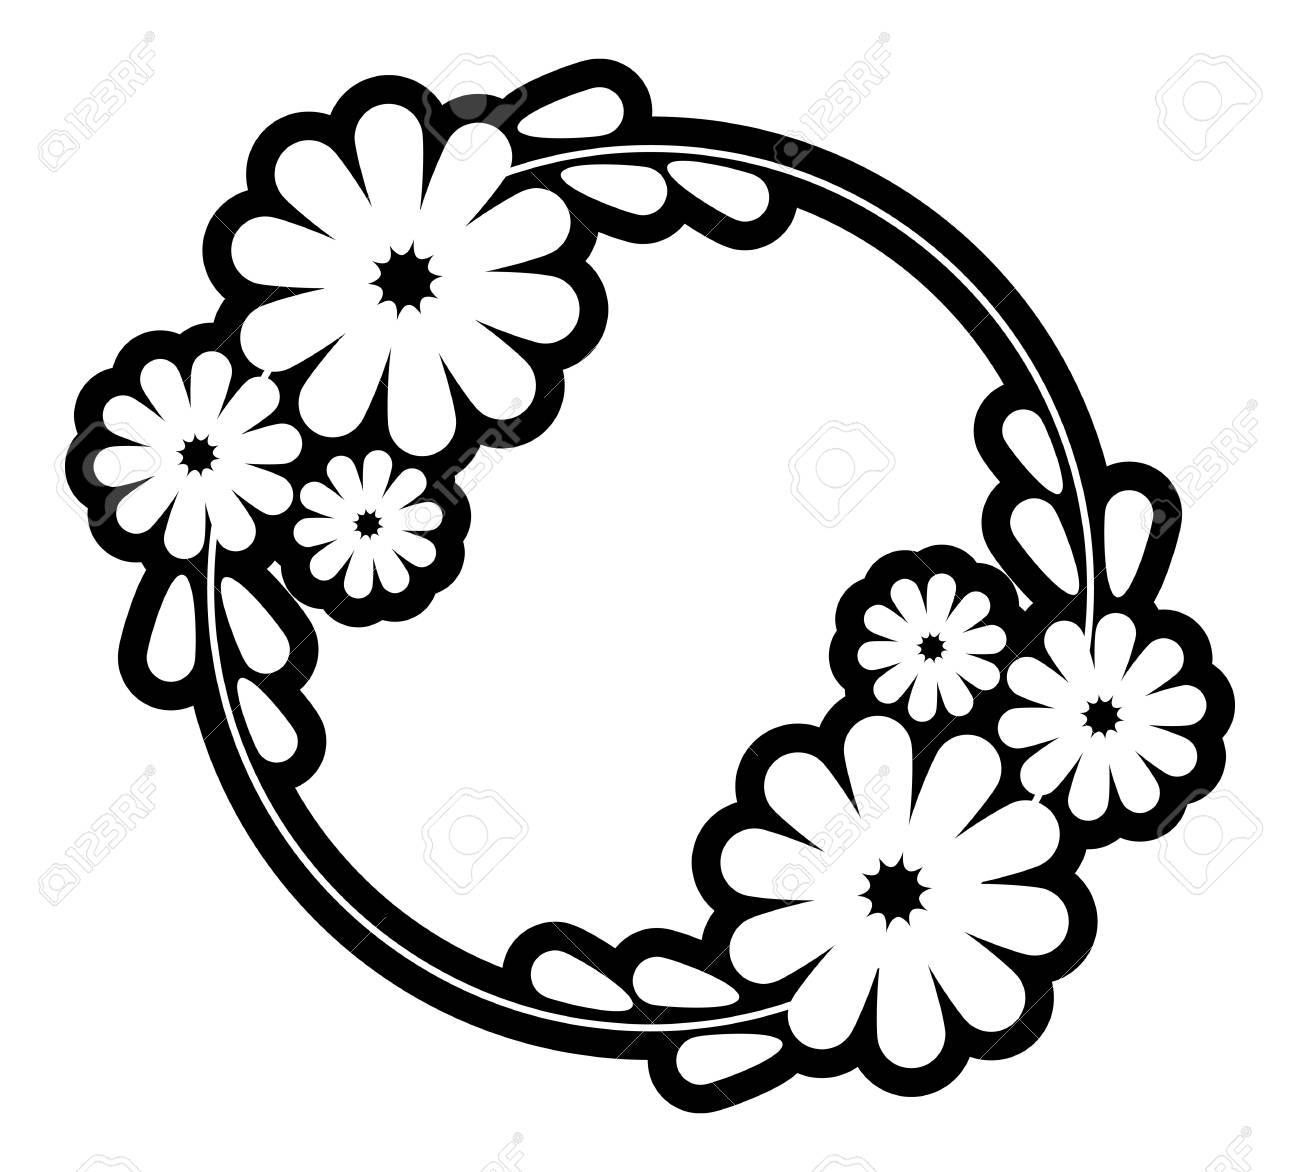 black and white silhouette round frame with decorative flowers rh 123rf com rose flower vector art flower vector artwork